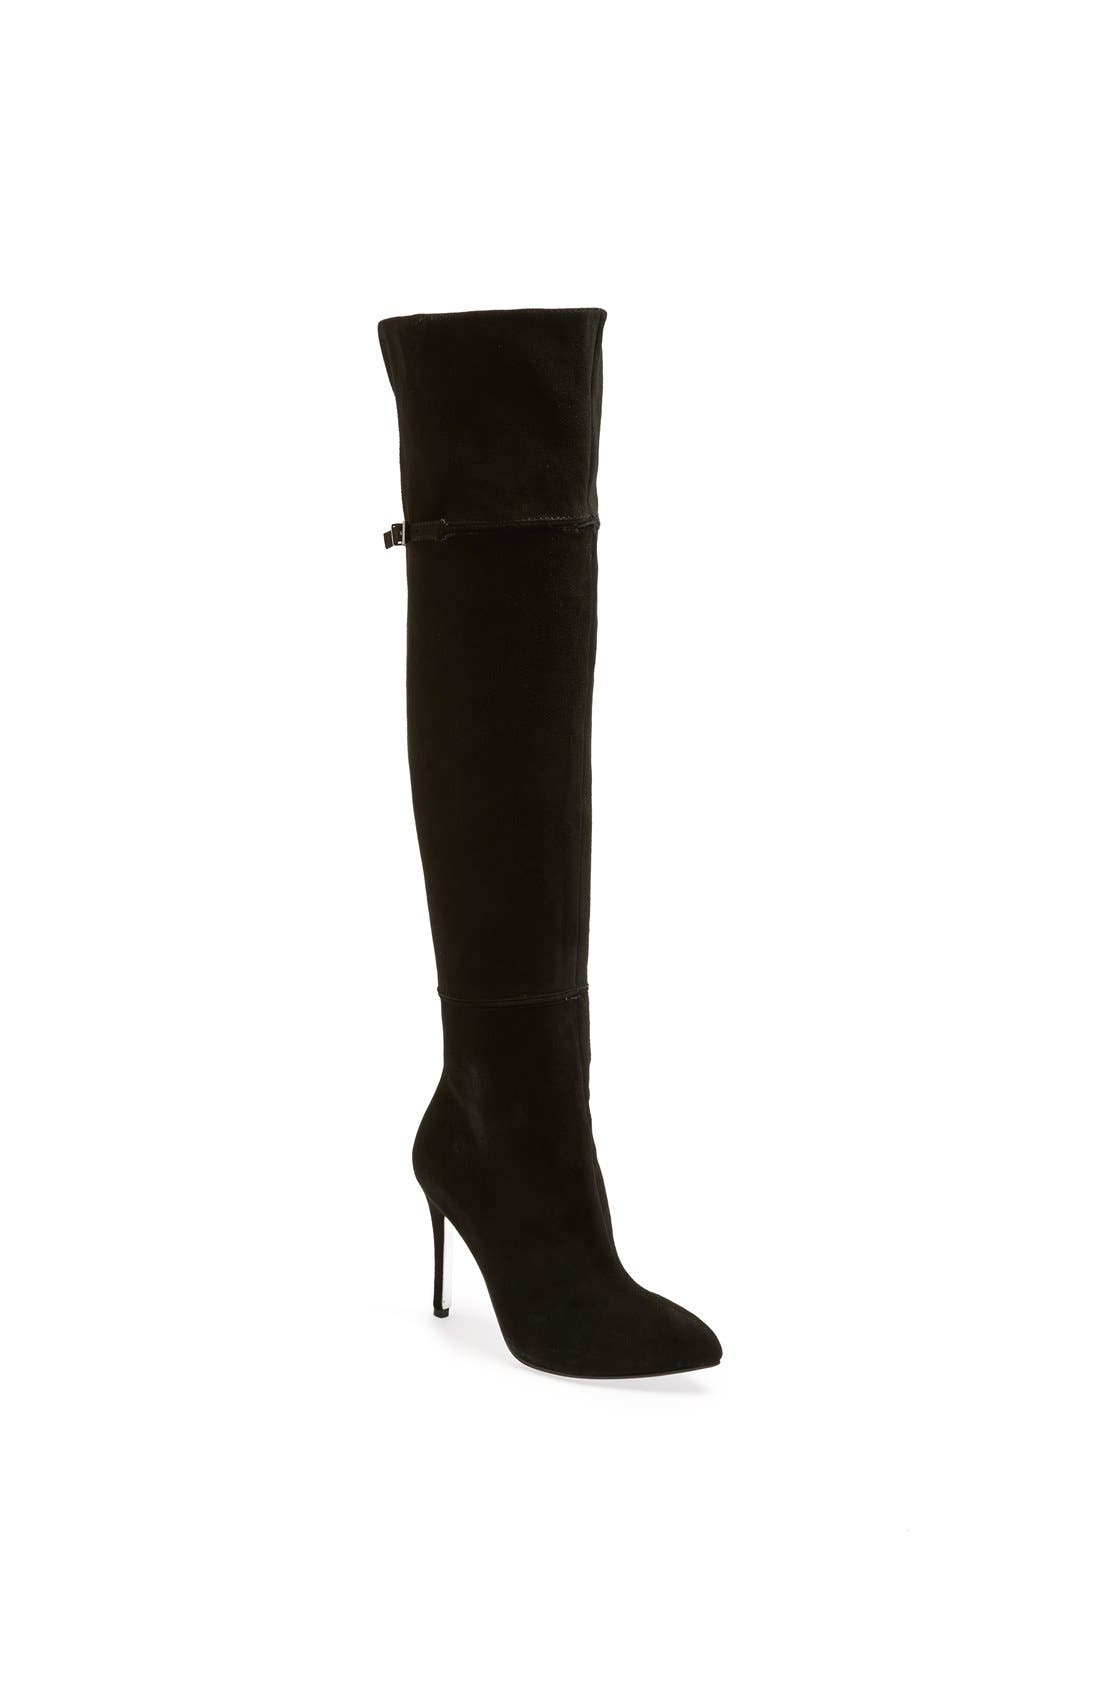 'Cassie' Over the Knee Boot,                         Main,                         color, Black